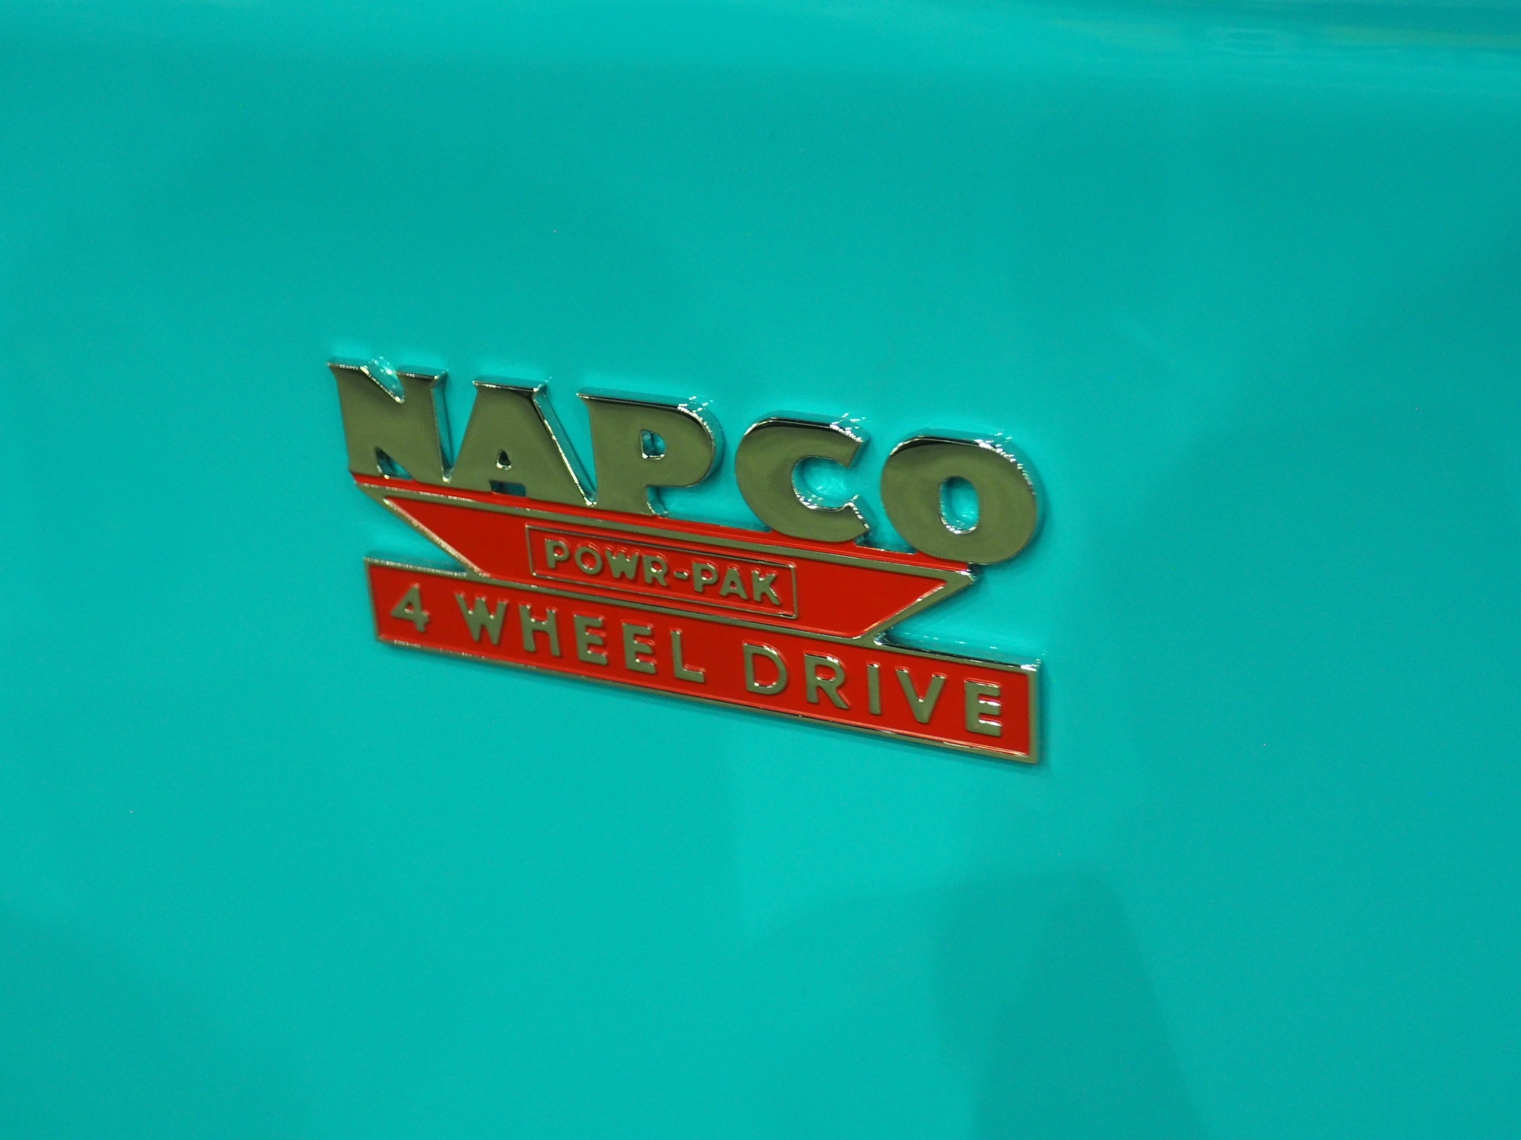 NAPCO 4×4 Conversion Kits: When 4WD Wasn't an Option From Truck Manufacturers